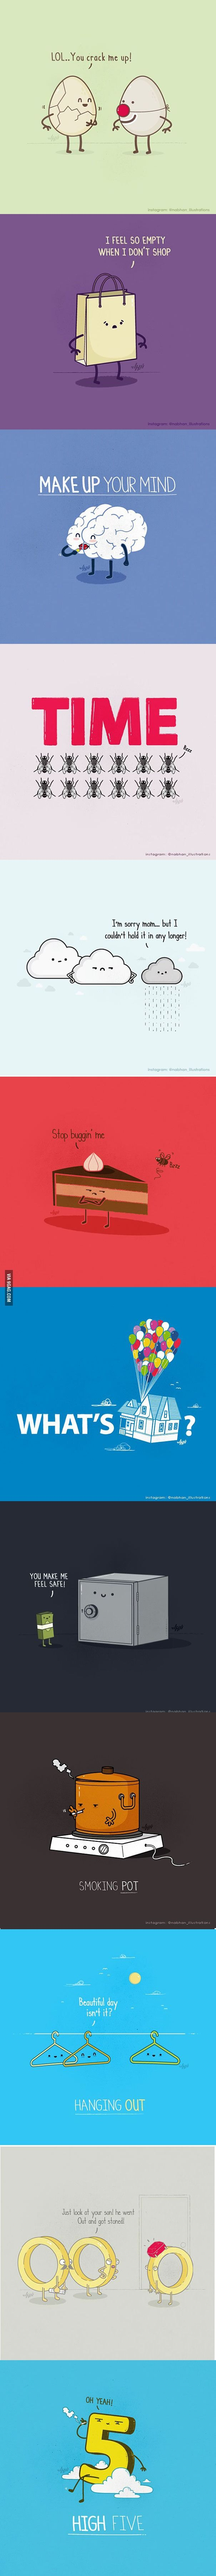 Pun Illustrations